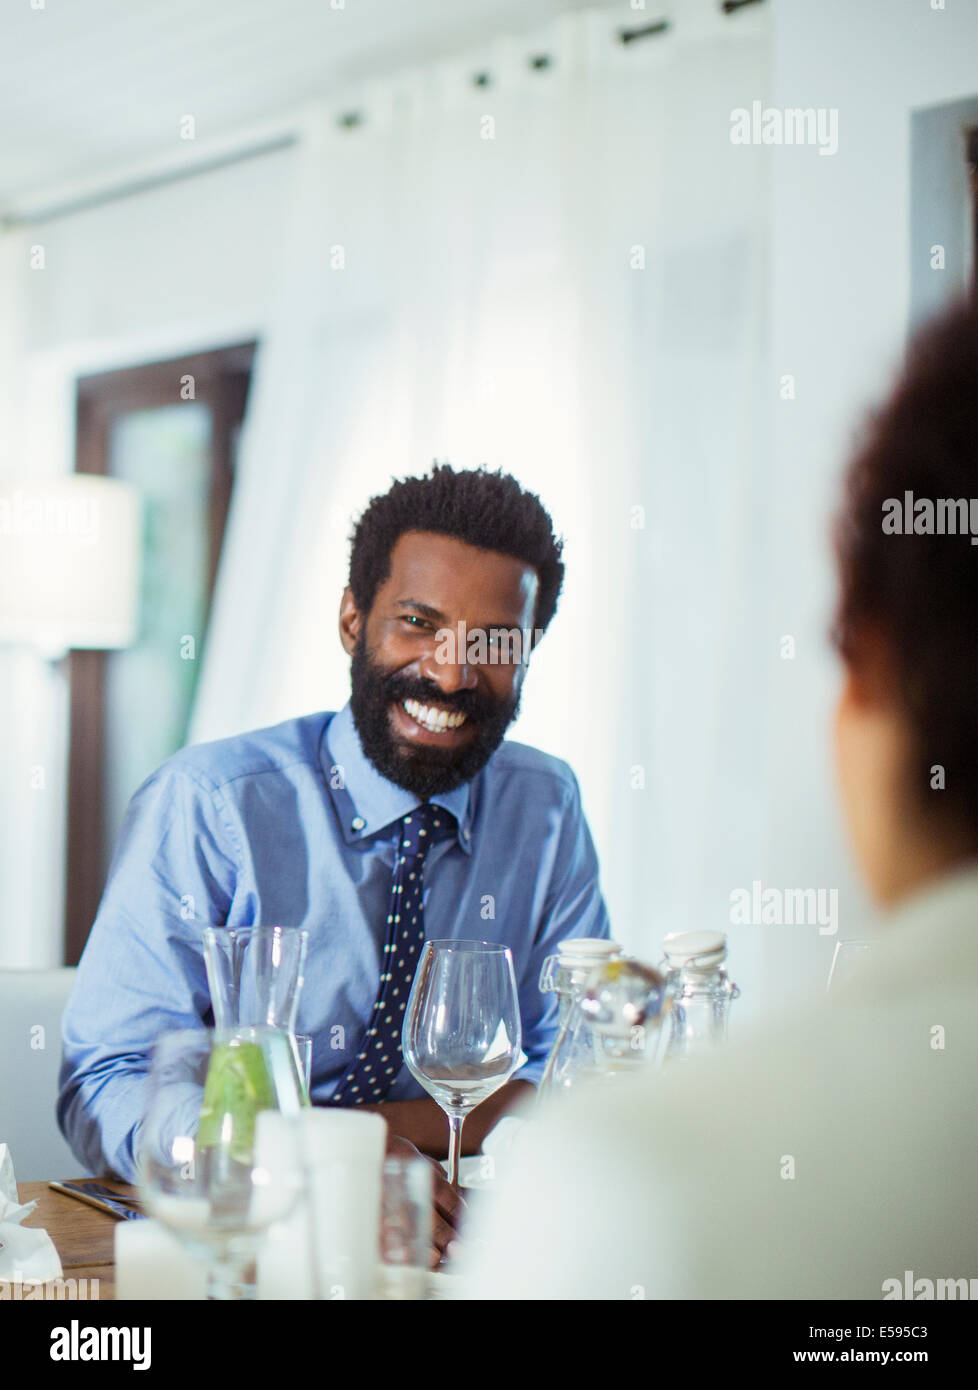 Couple eating together at table - Stock Image